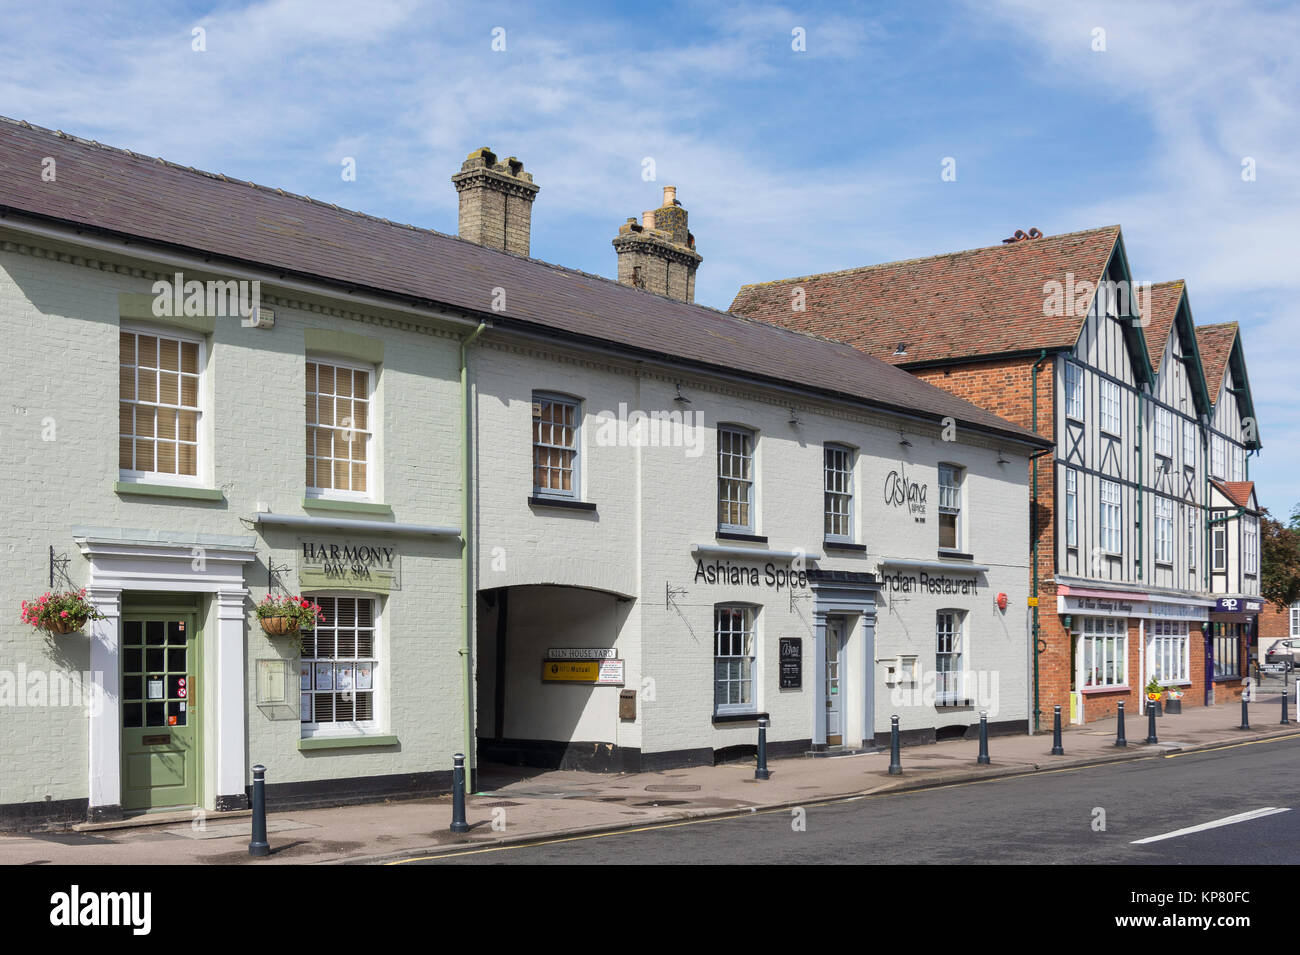 Royston uk stock photos royston uk stock images alamy for Ashiana indian cuisine